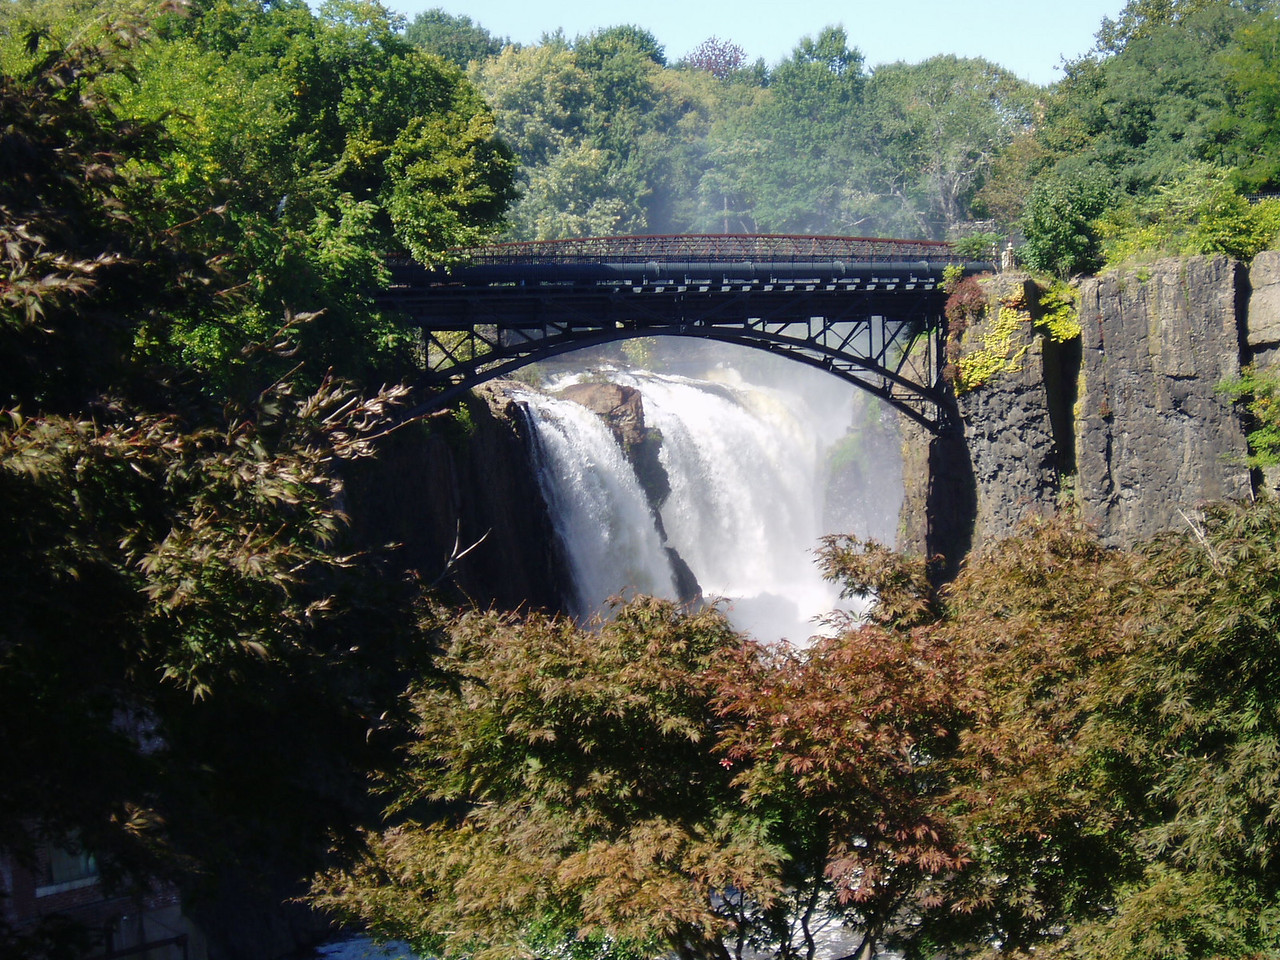 Evidently there is a large waterfall in the middle of Patterson, NJ. Who knew?